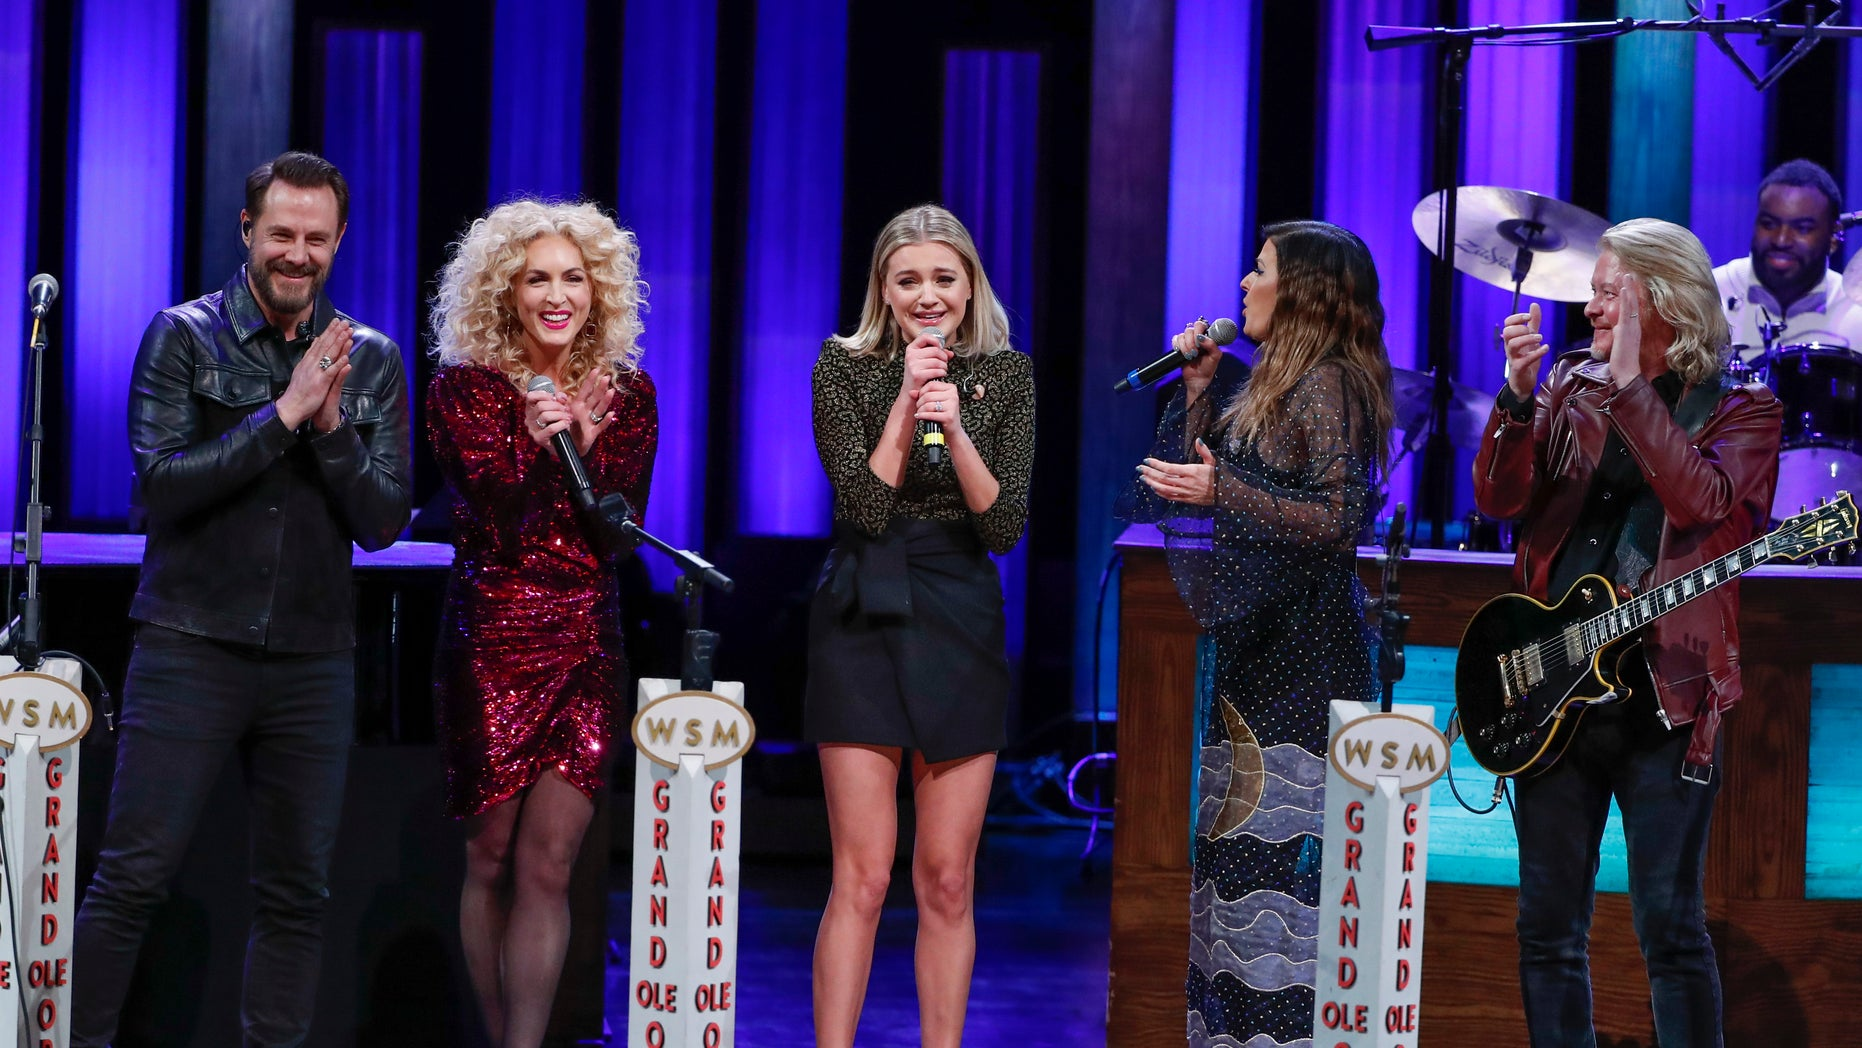 Kelsea Ballerini, center, is invited to join the Opry by members of Little Big Town at the Grand Ole Opry on Tuesday, March 5, 2019, in Nashville, Tenn.